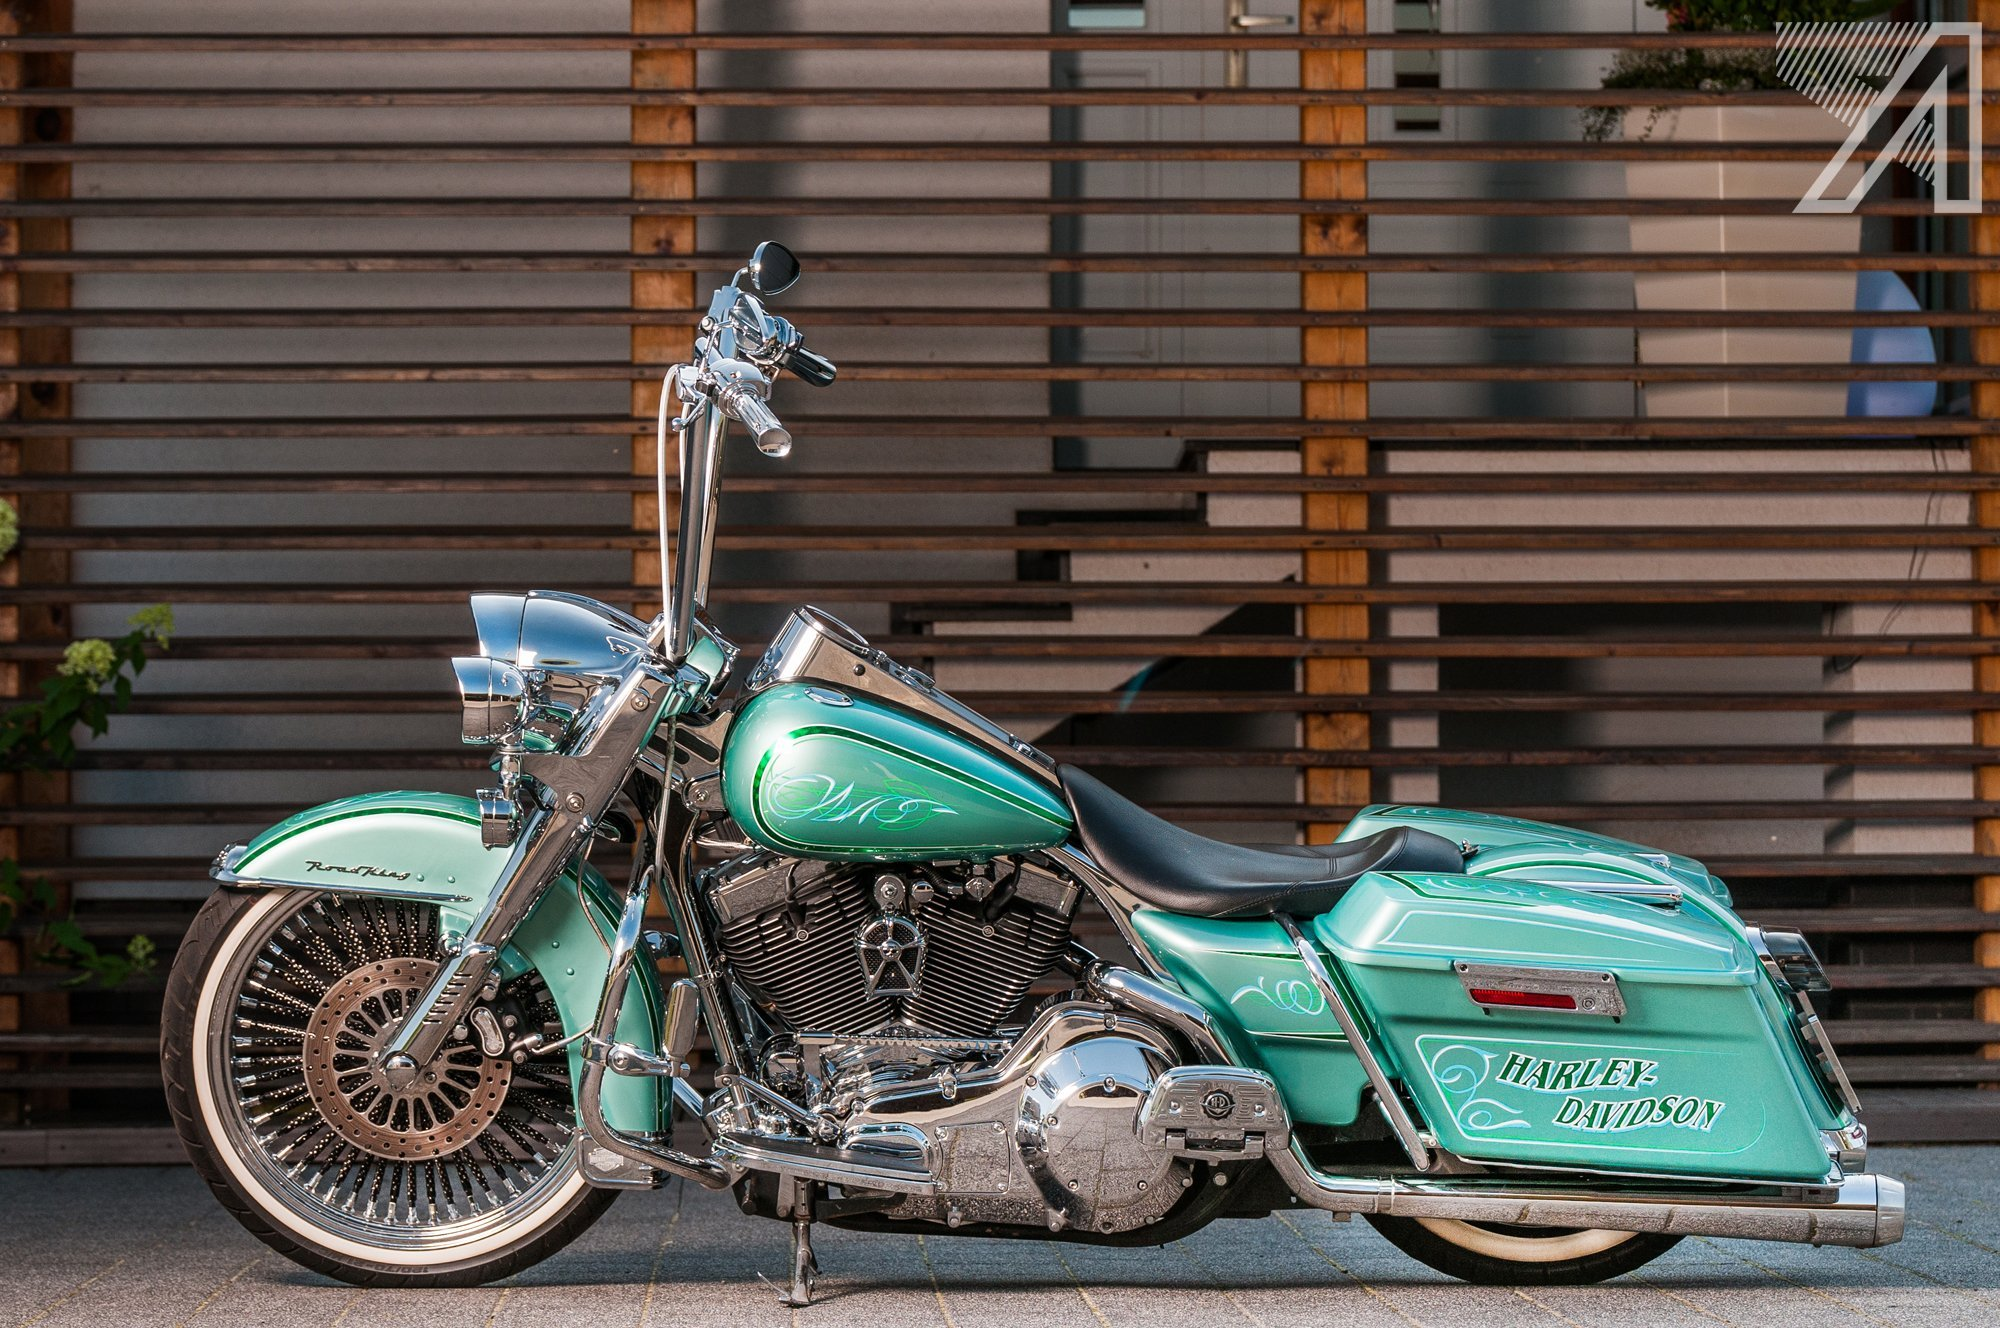 2016-10::1476001596-h-d-road-king-green-candy-leaf-13.jpg